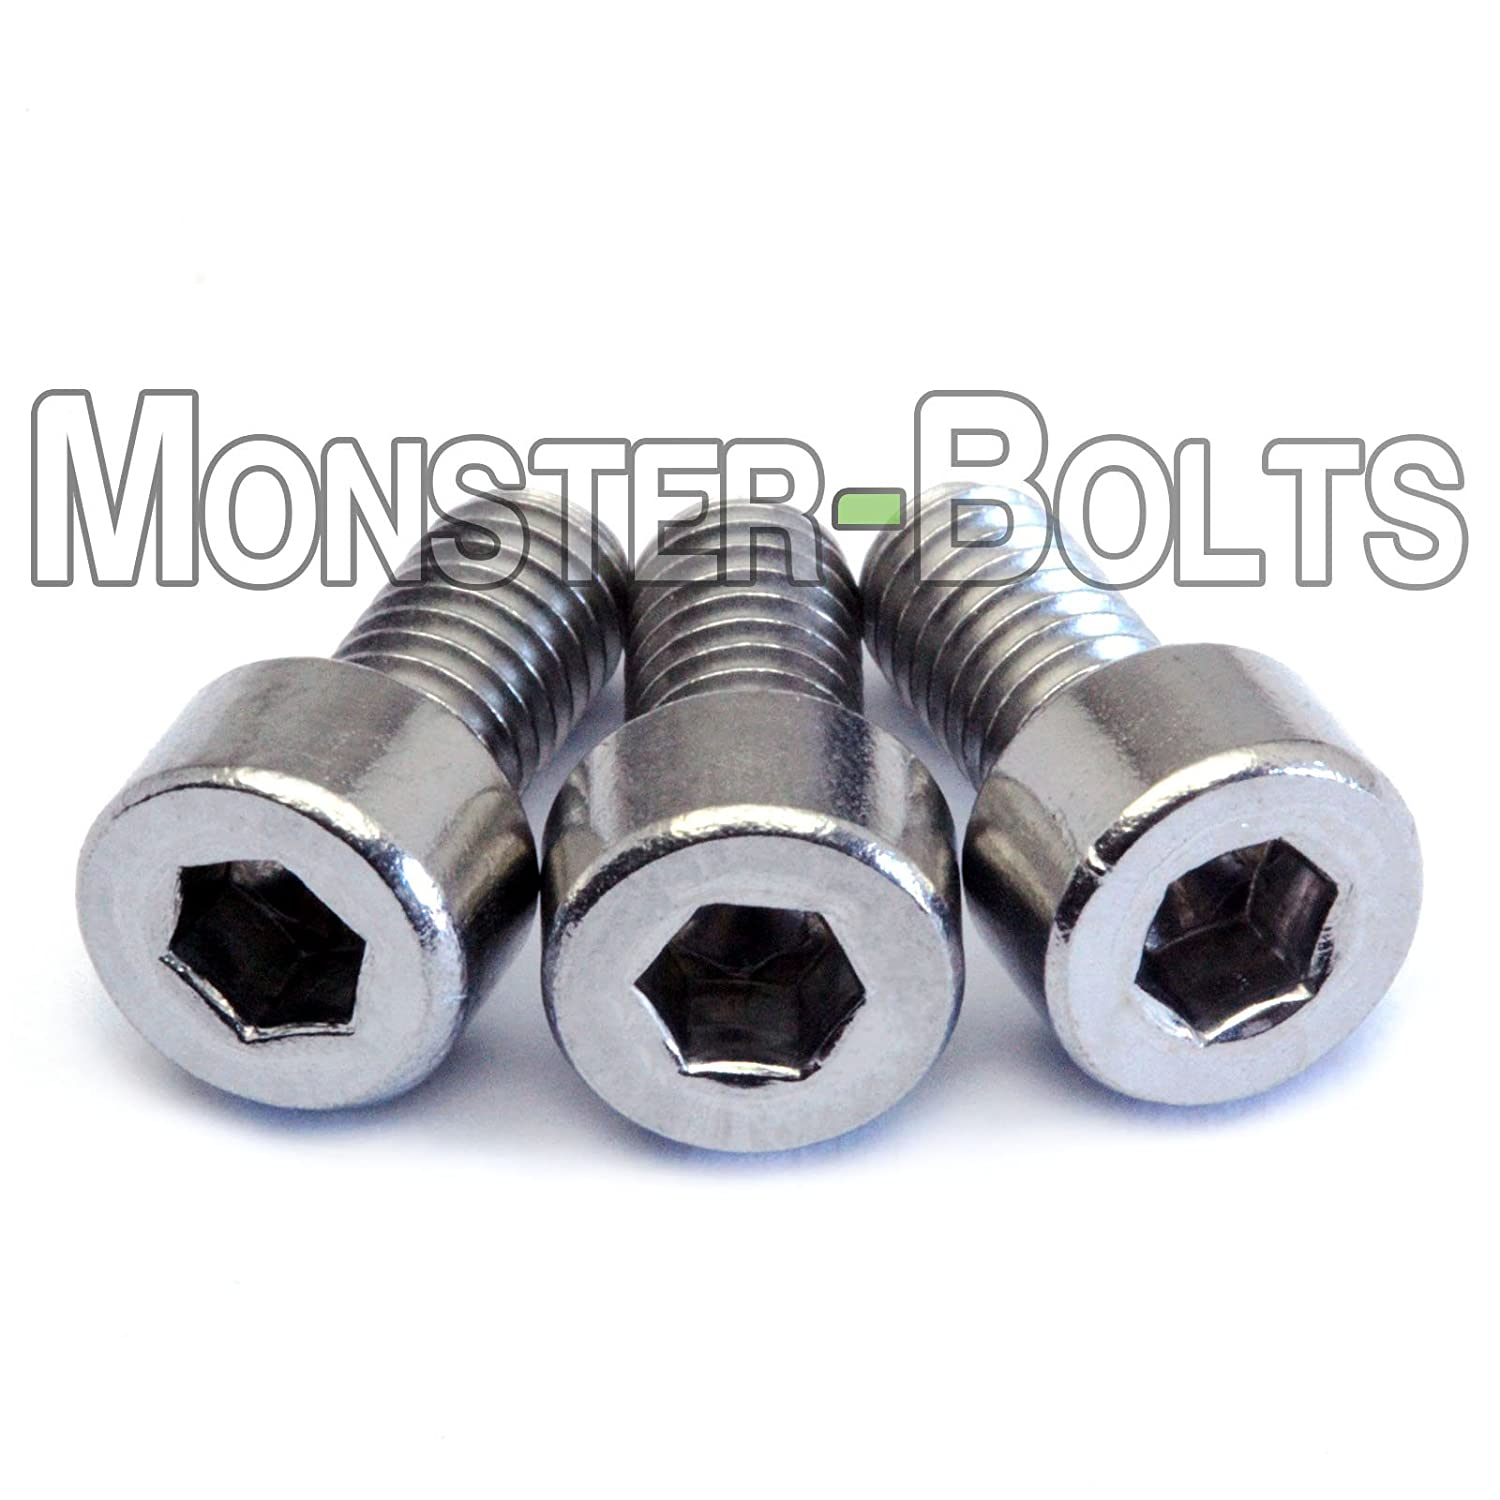 Floyd Rose Style Guitar Locking Nut / String Clamp Screws - QTY 3 - Stainless Steel - MonsterBolts 4334247902